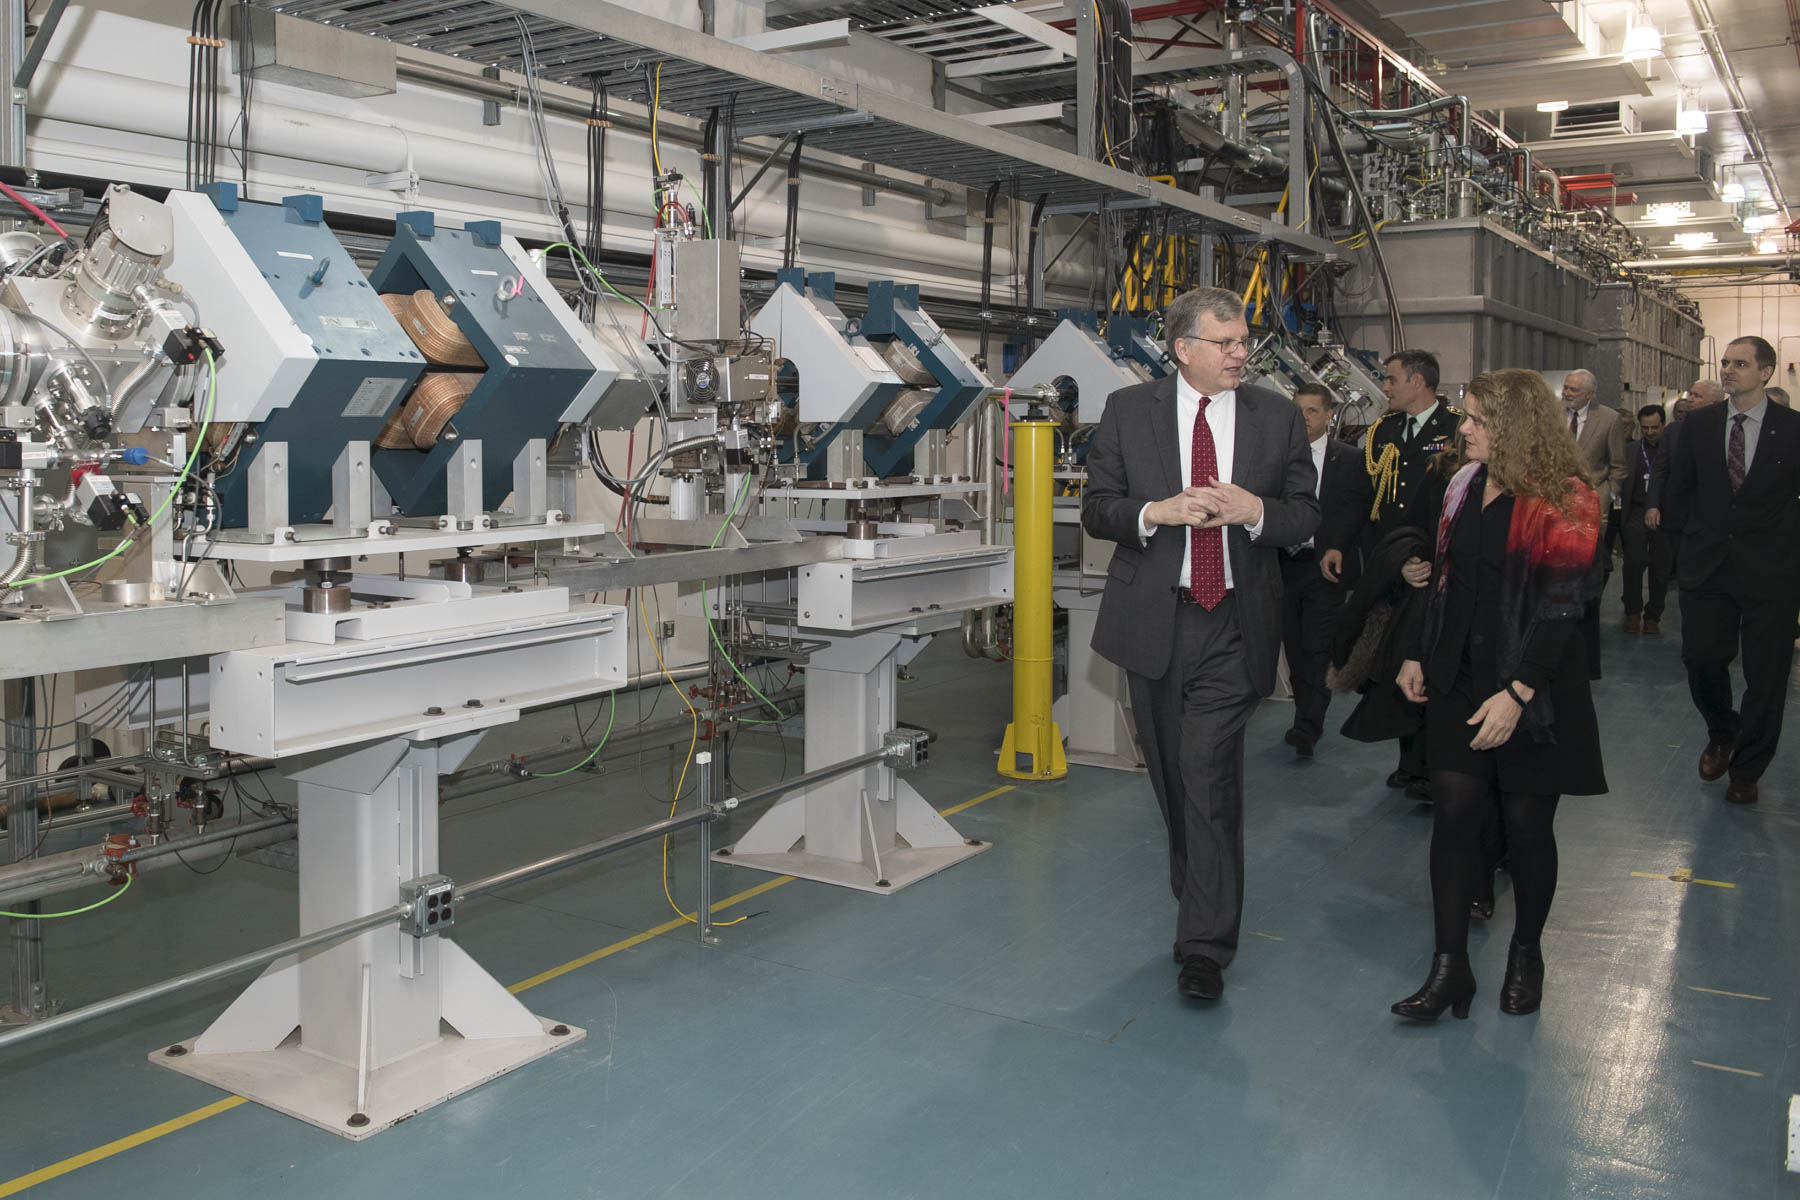 In the morning, the Governor General had an opportunity to tour the TRIUMF campus, Canada's particle accelerator centre.